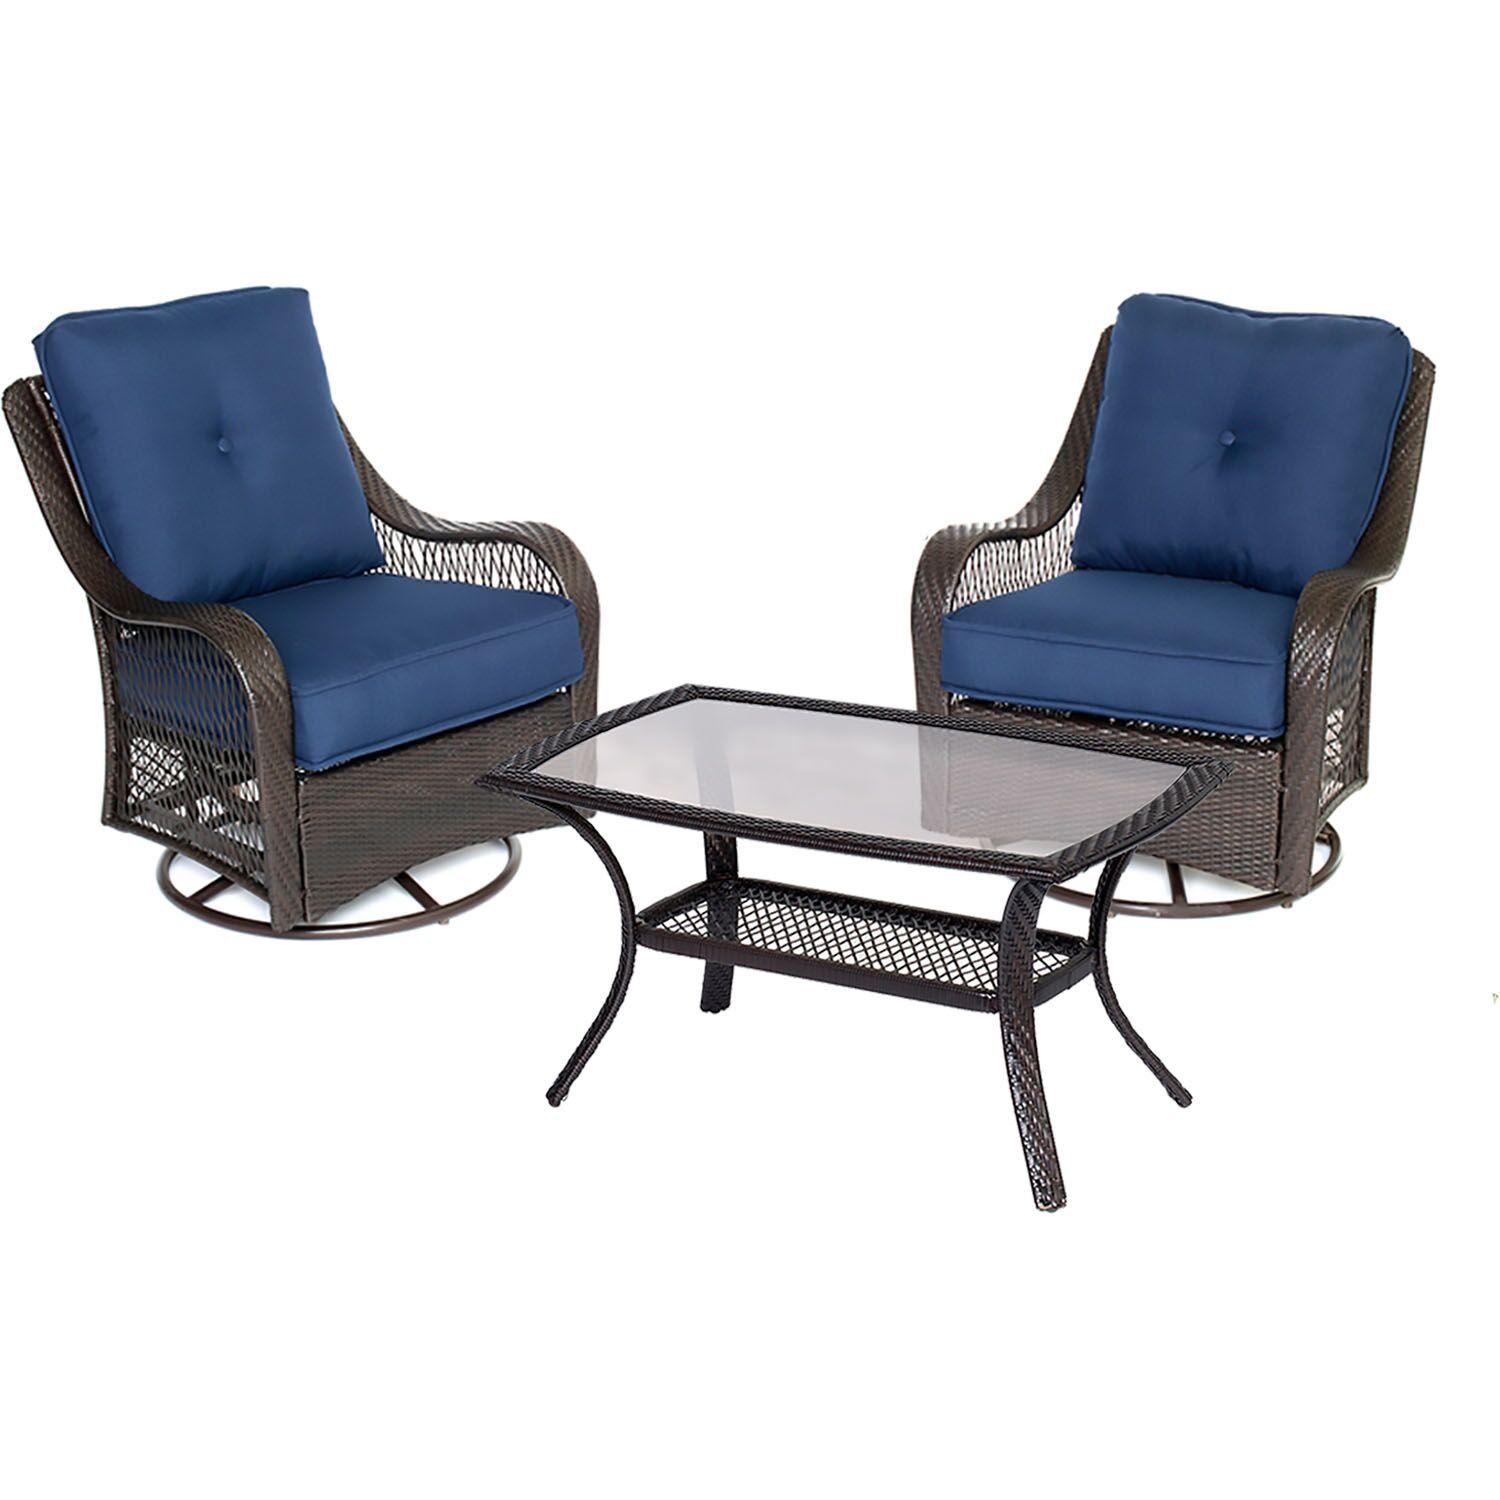 Innsbrook 3 Piece Conersation Set with Cushions Fabric: Navy Blue